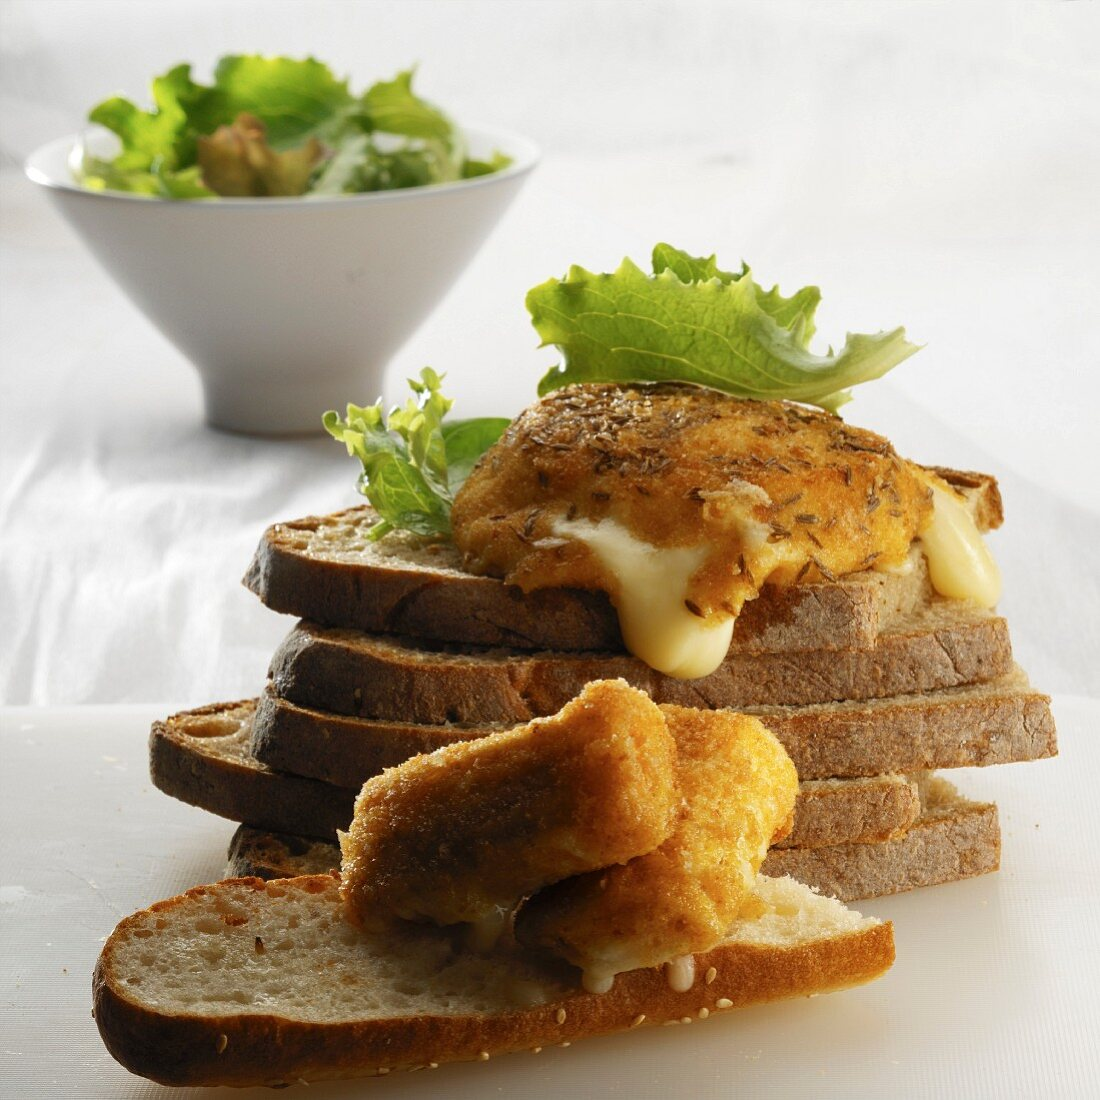 Baked cheese on country bread